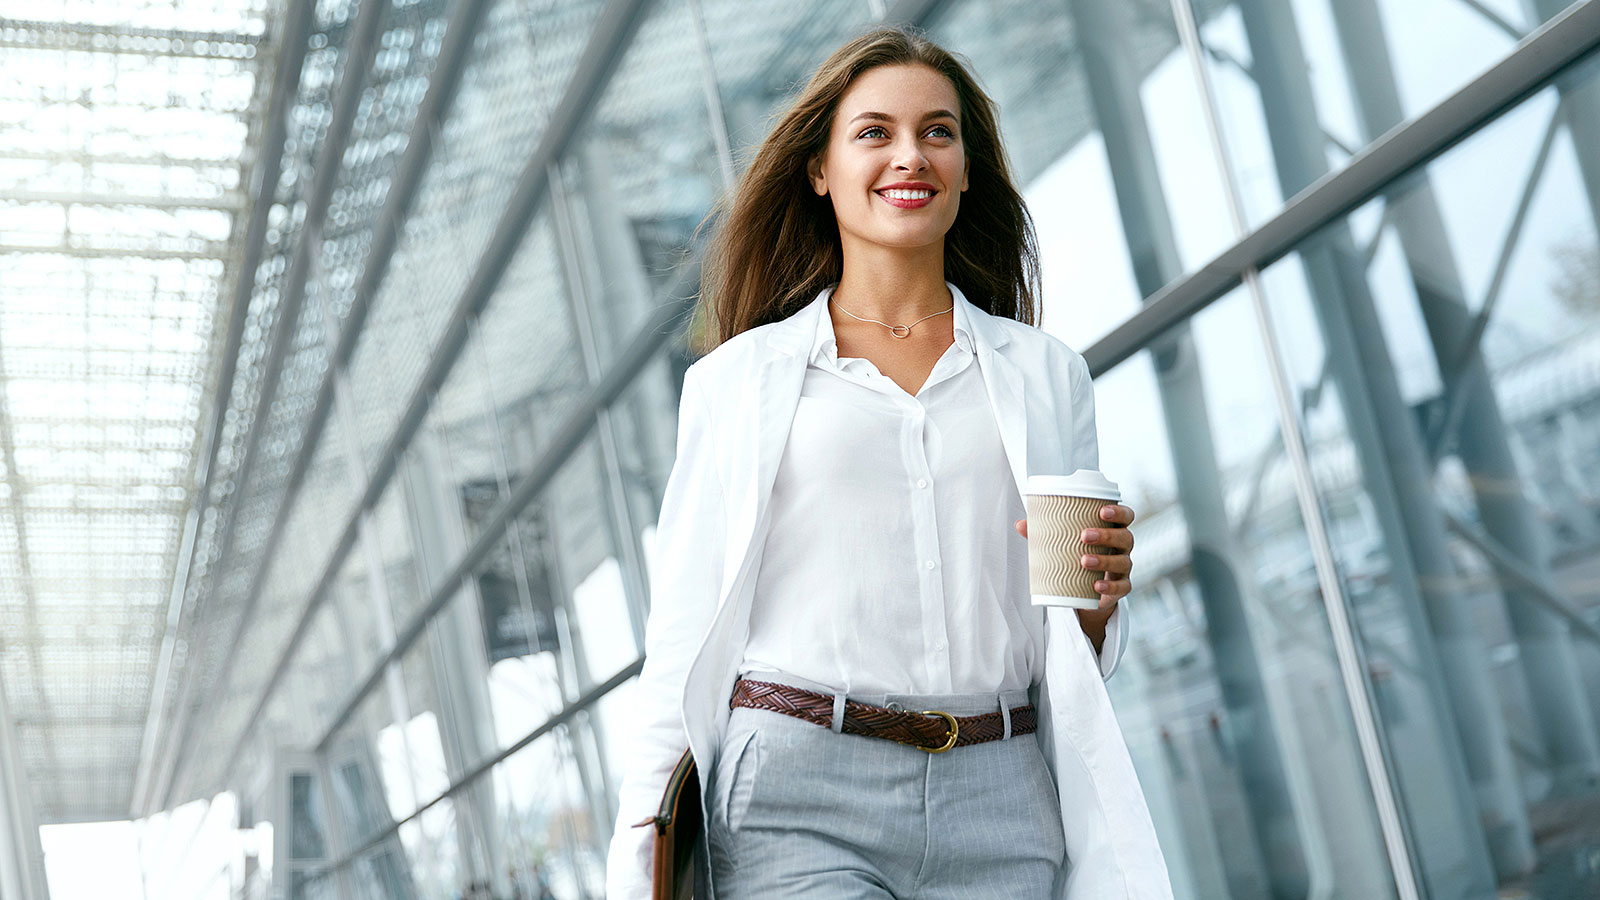 How women who dress business casual are perceived in the office